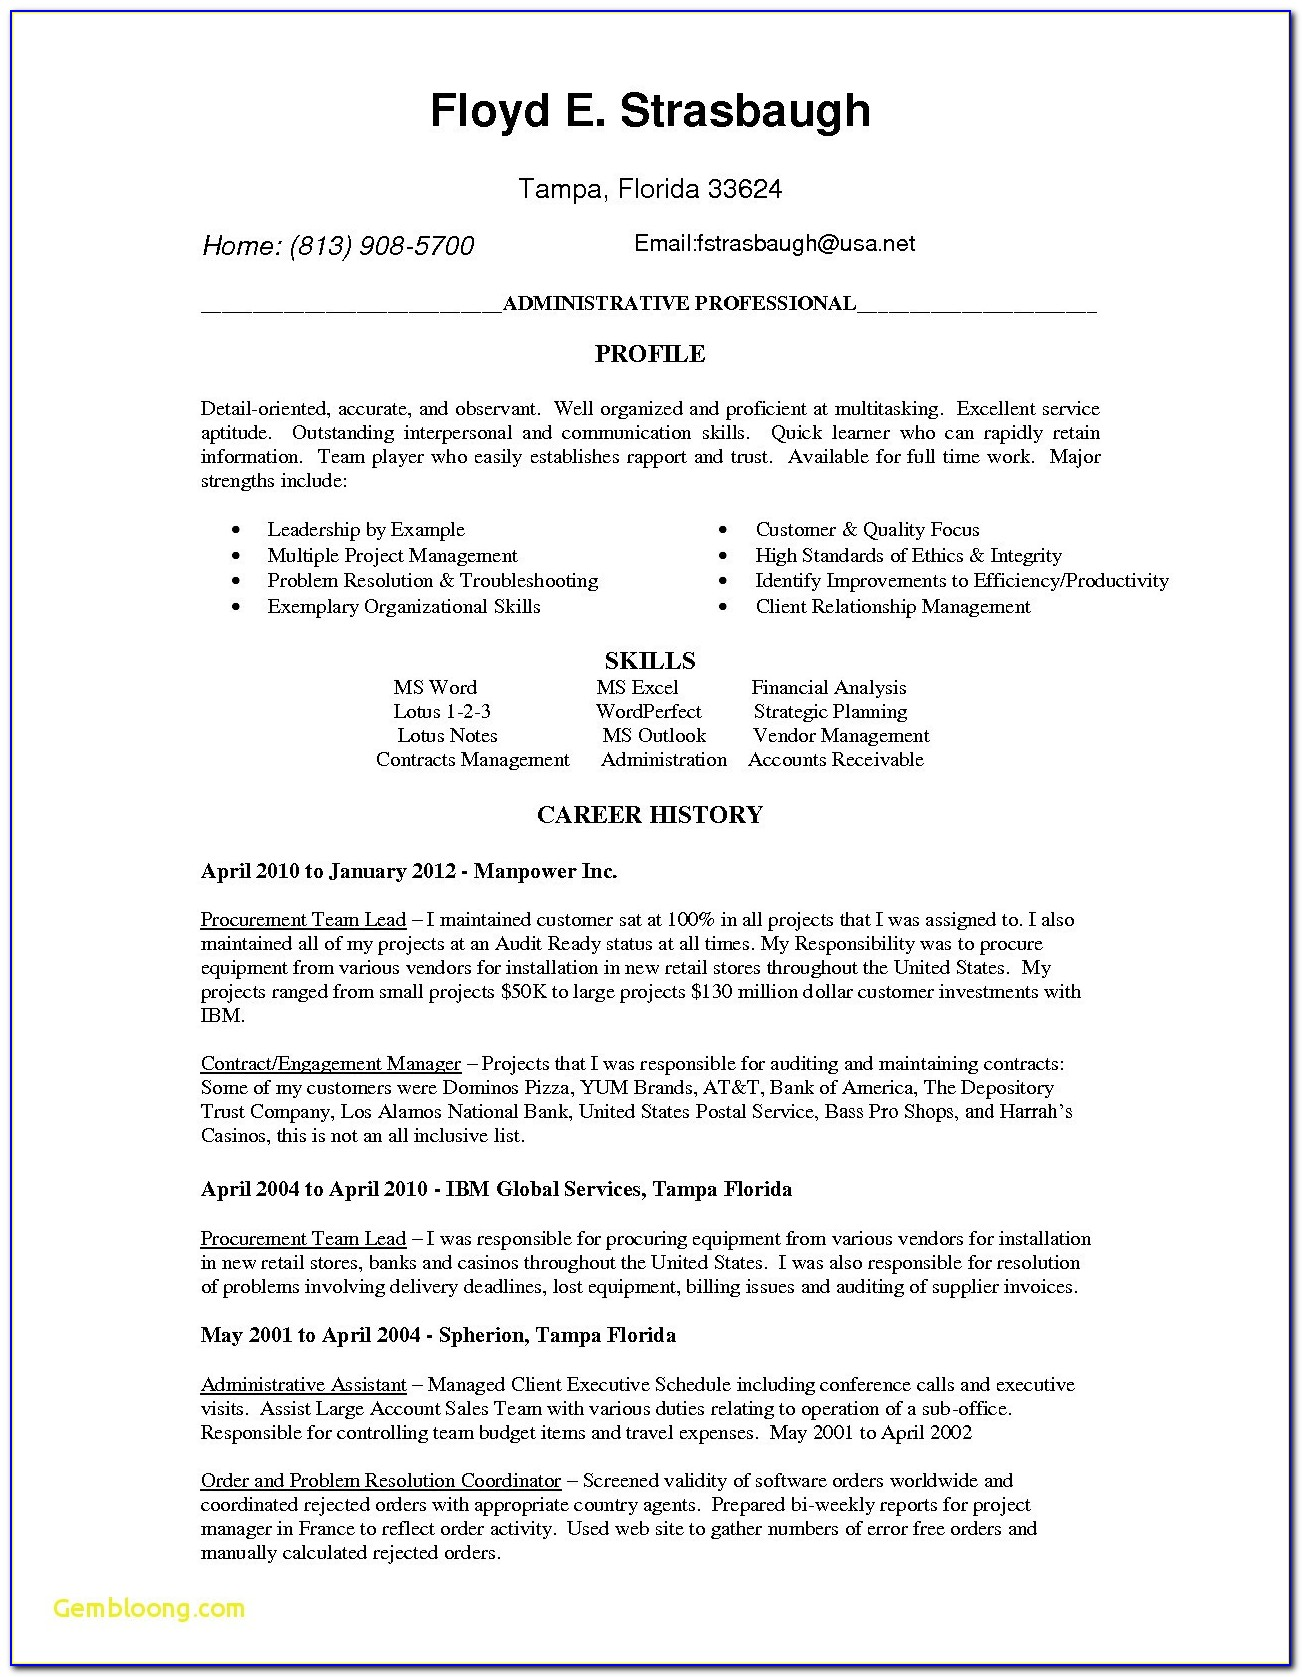 Resume Maker Professional New Free Resume Template Downloads For Word Reference Resume Formats